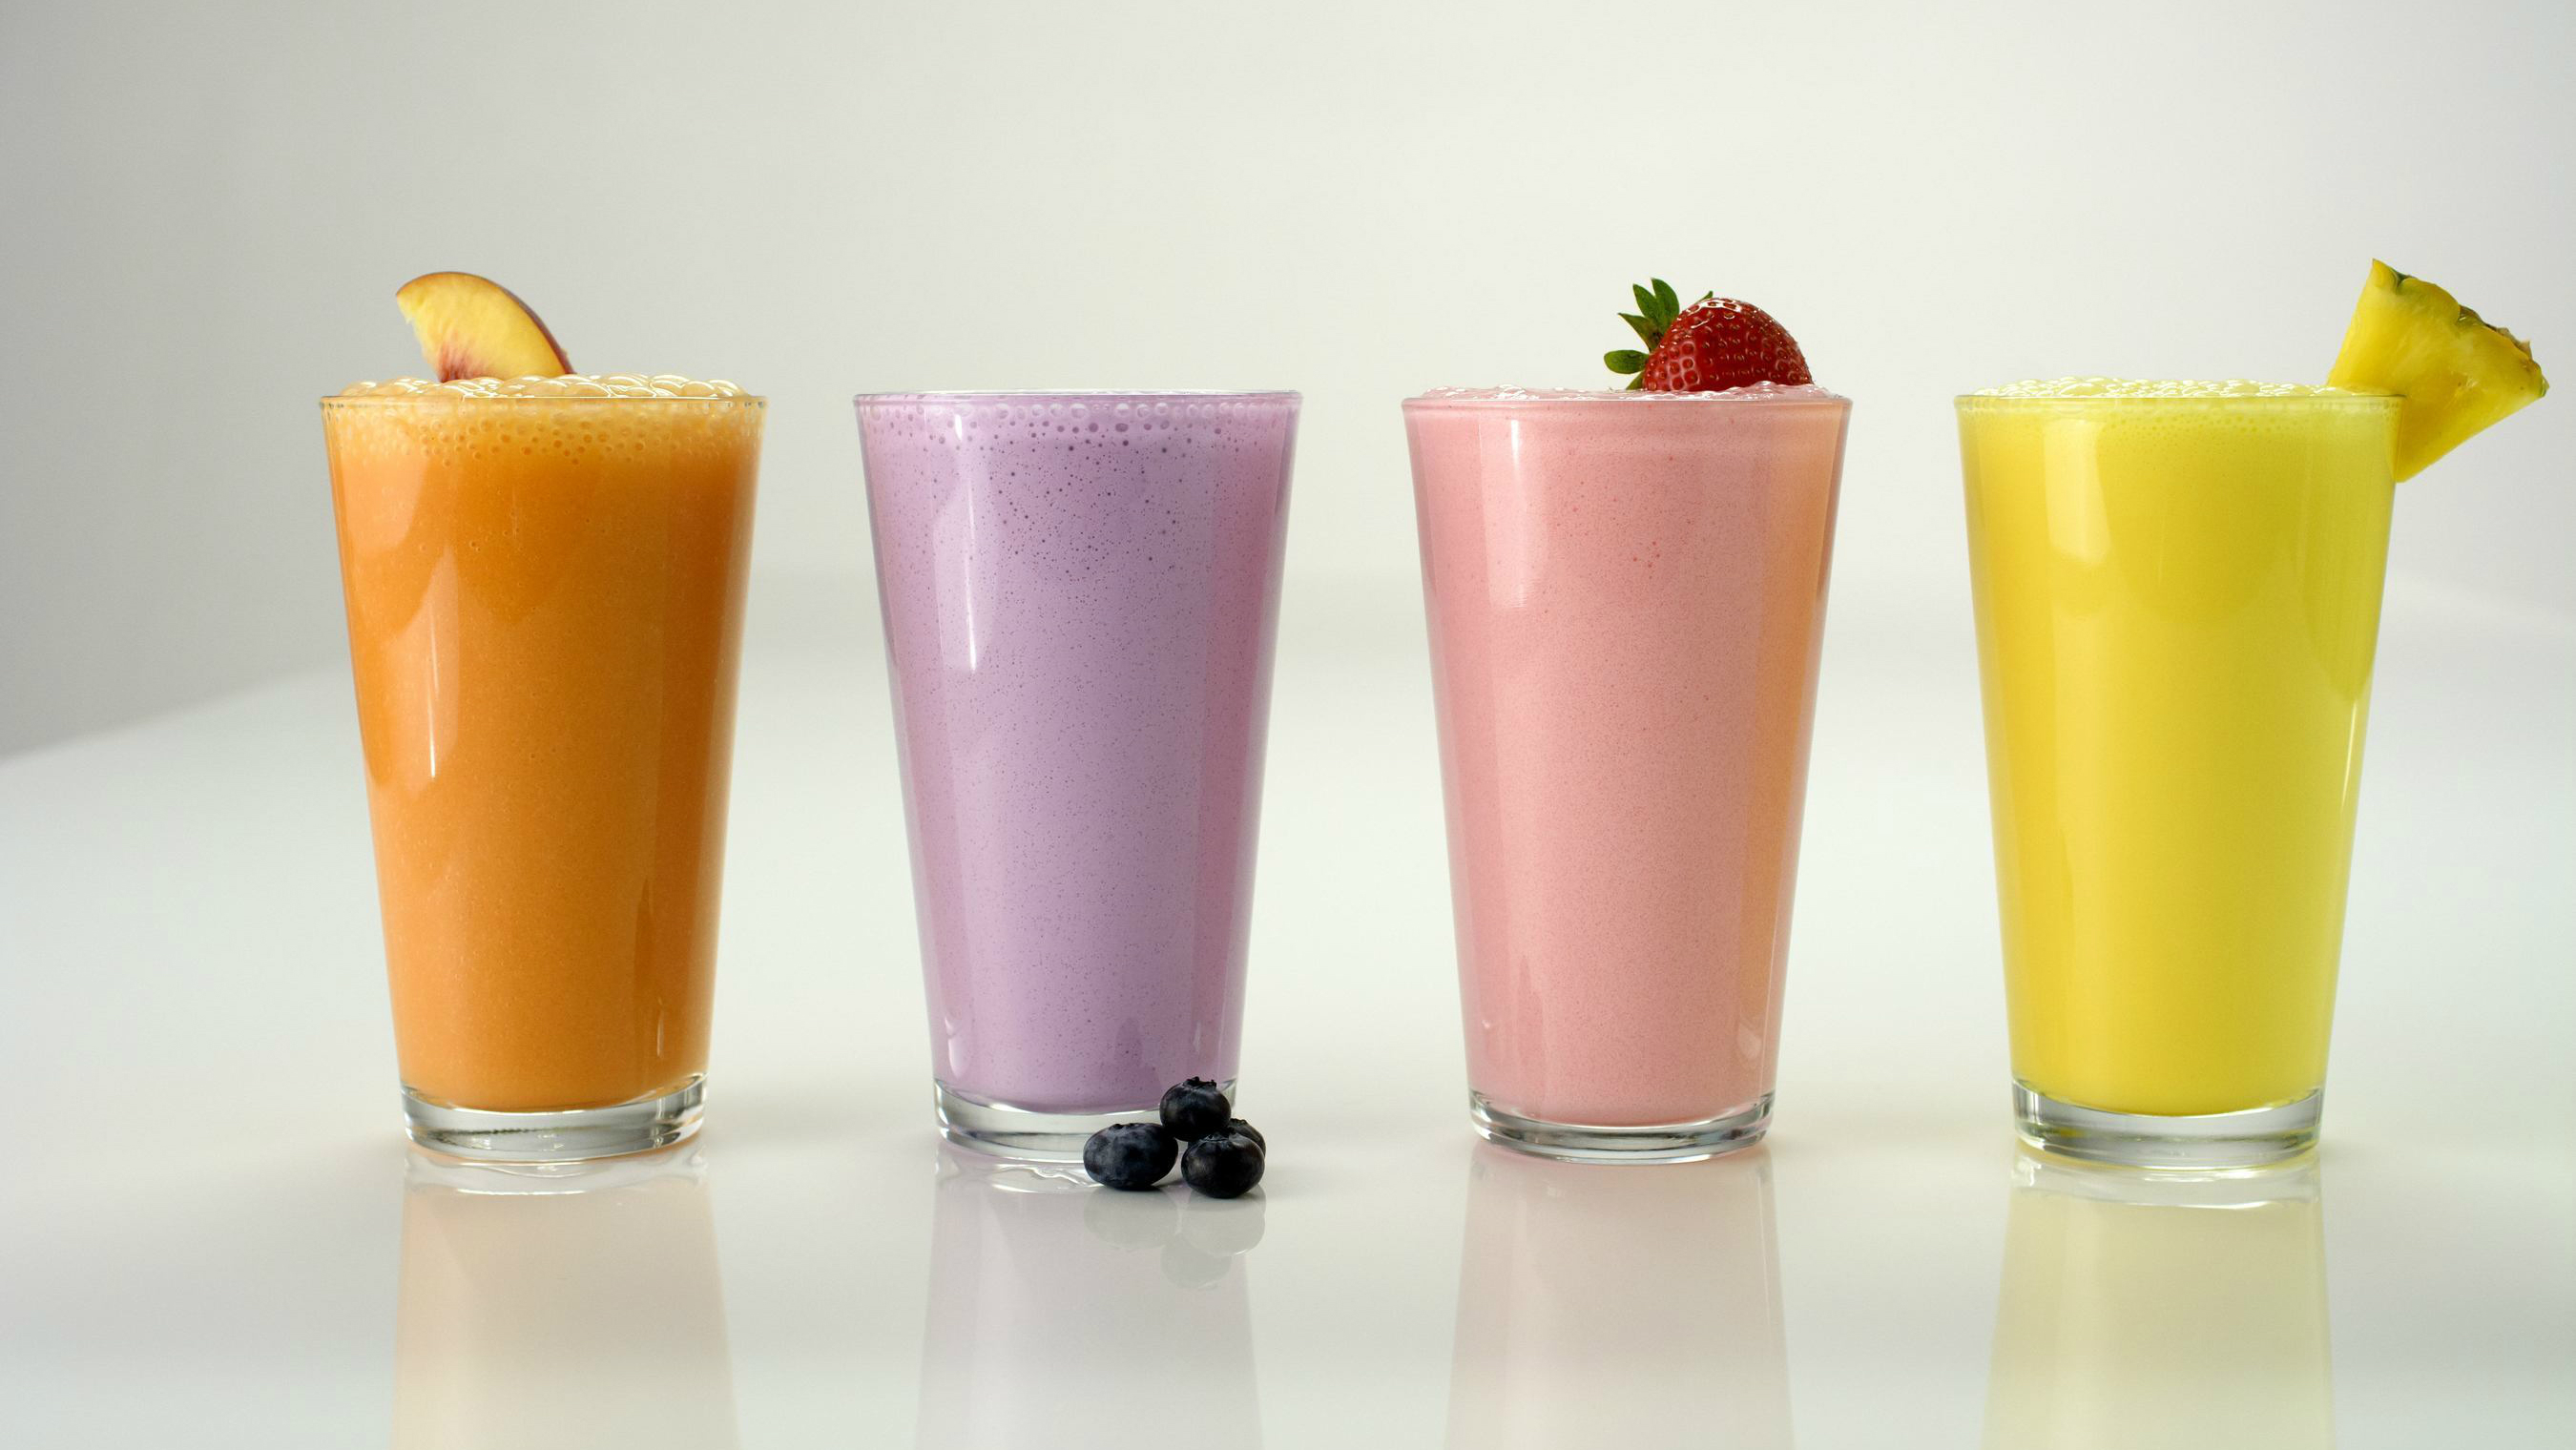 A majority of people think liquid breakfast is better for them than whole foods.